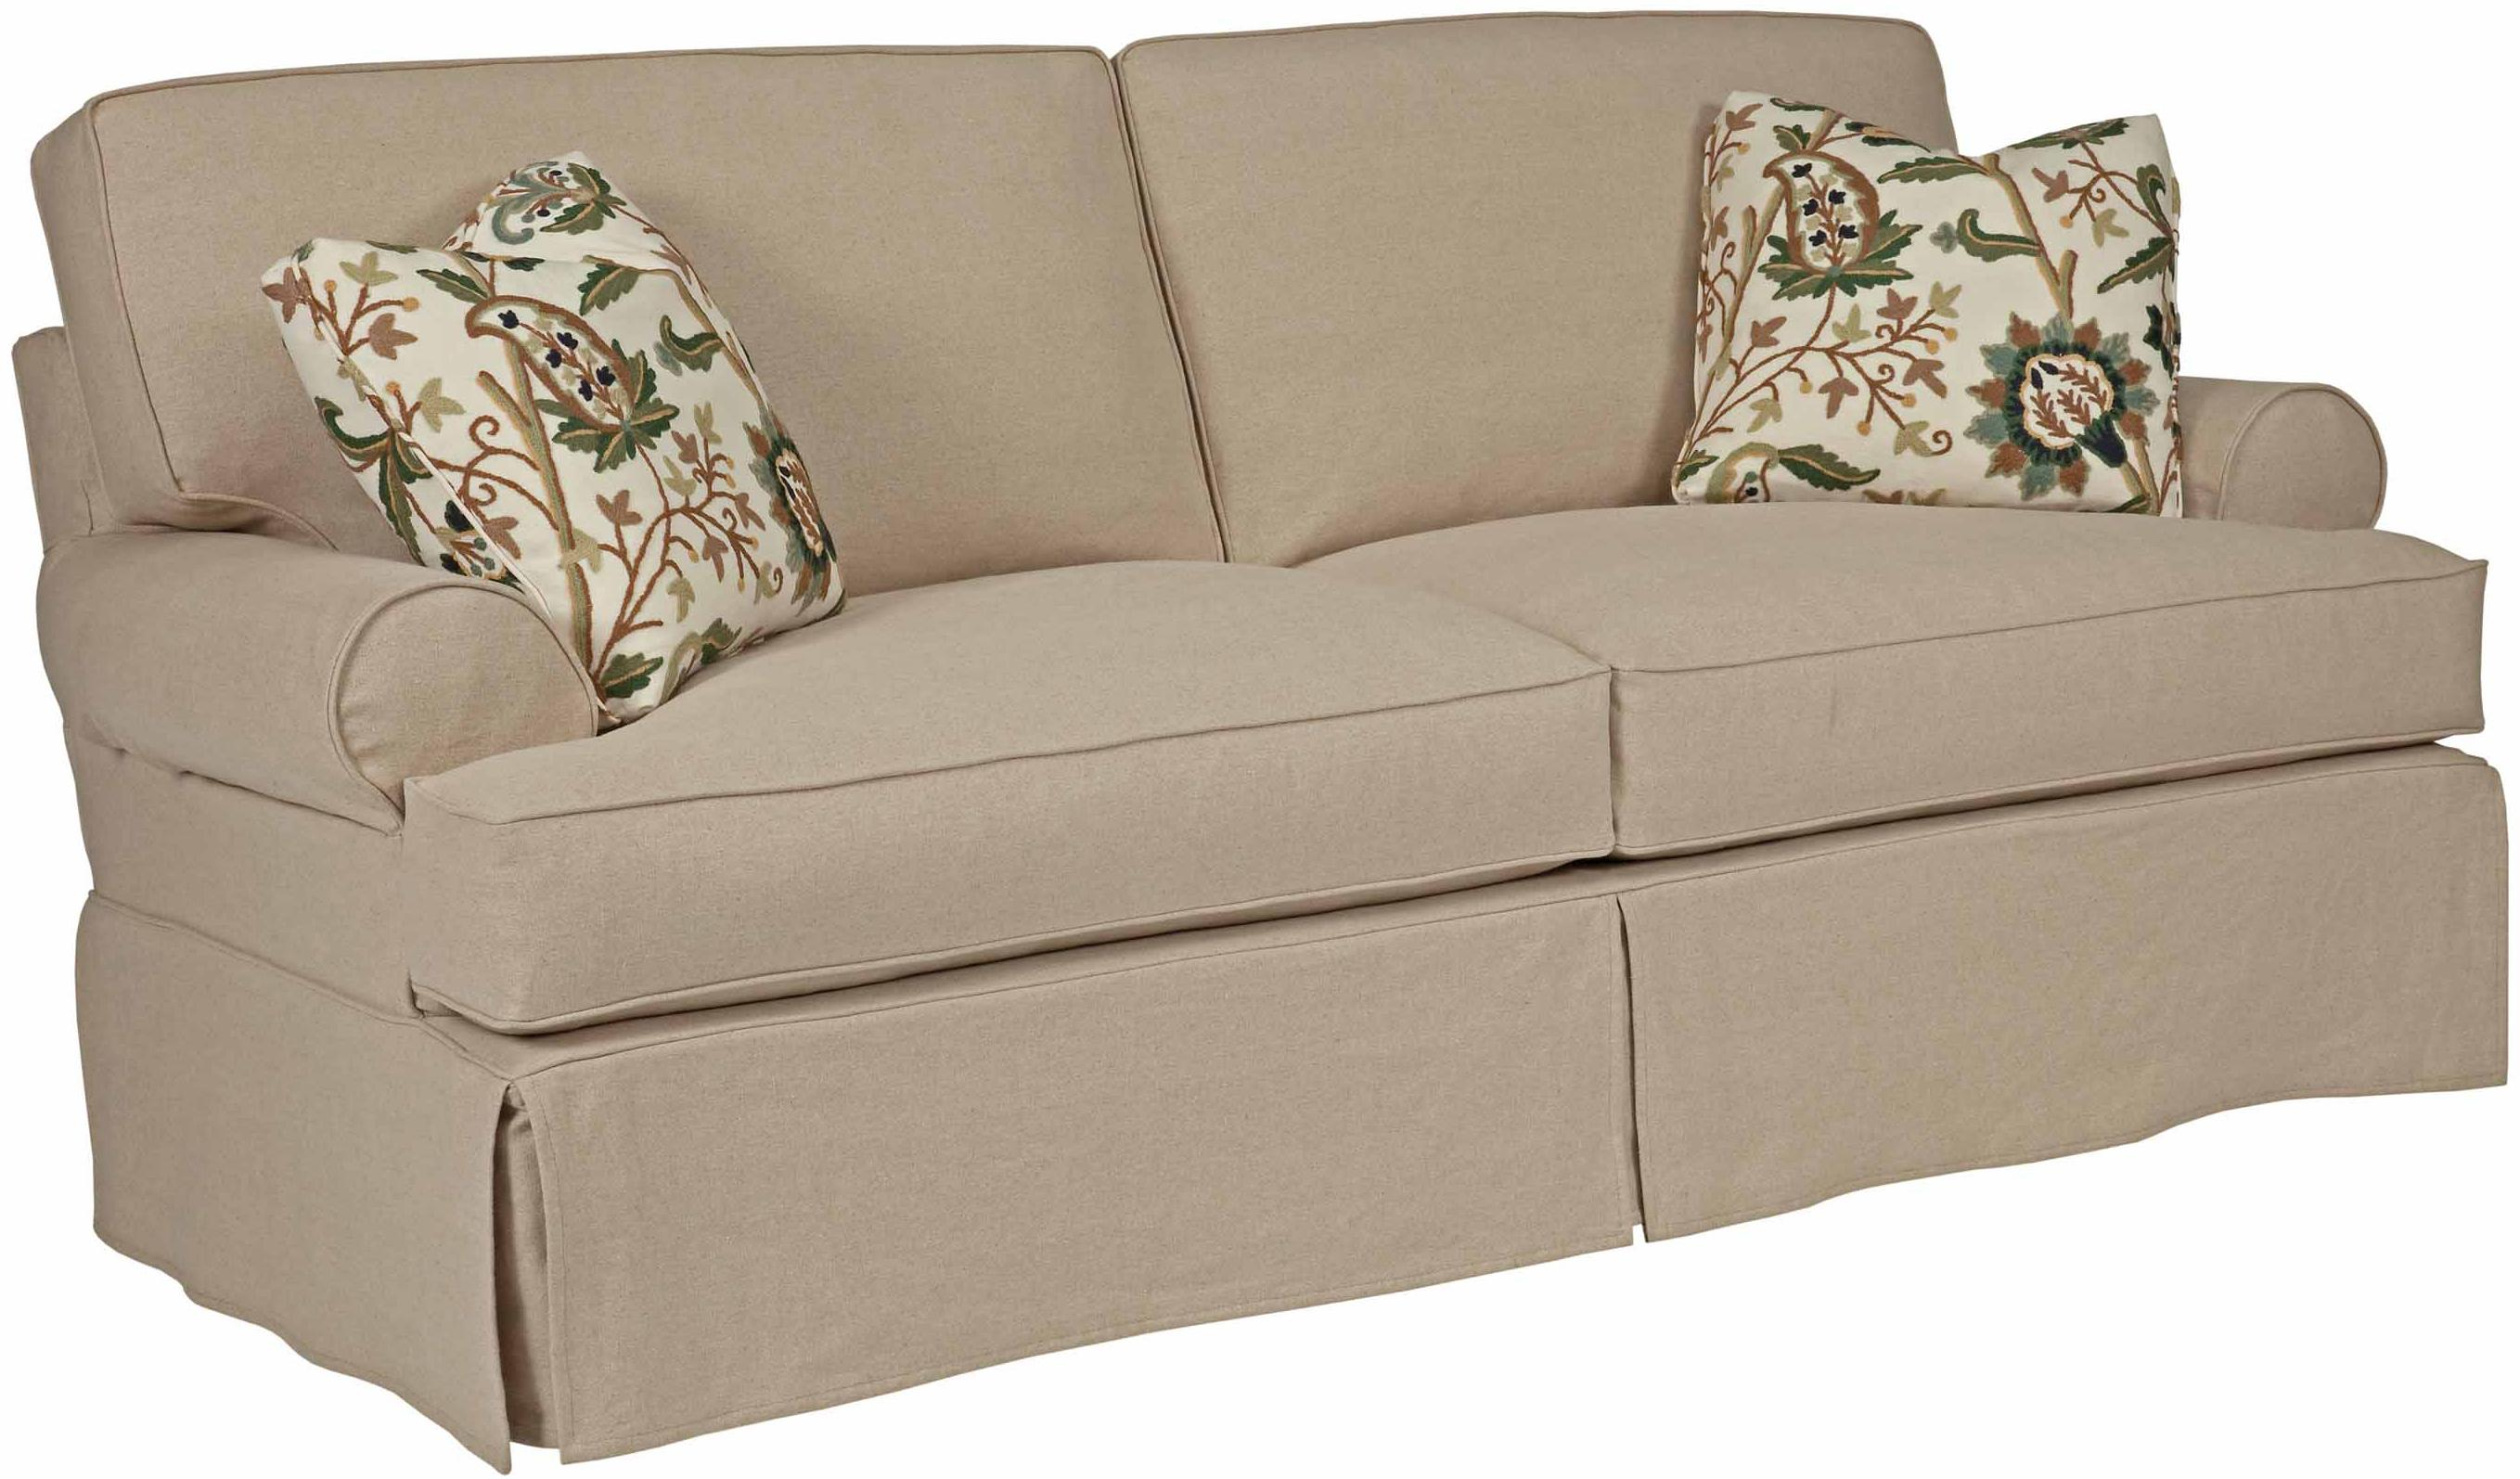 samantha two seat sofa with slipcover tailoring loose